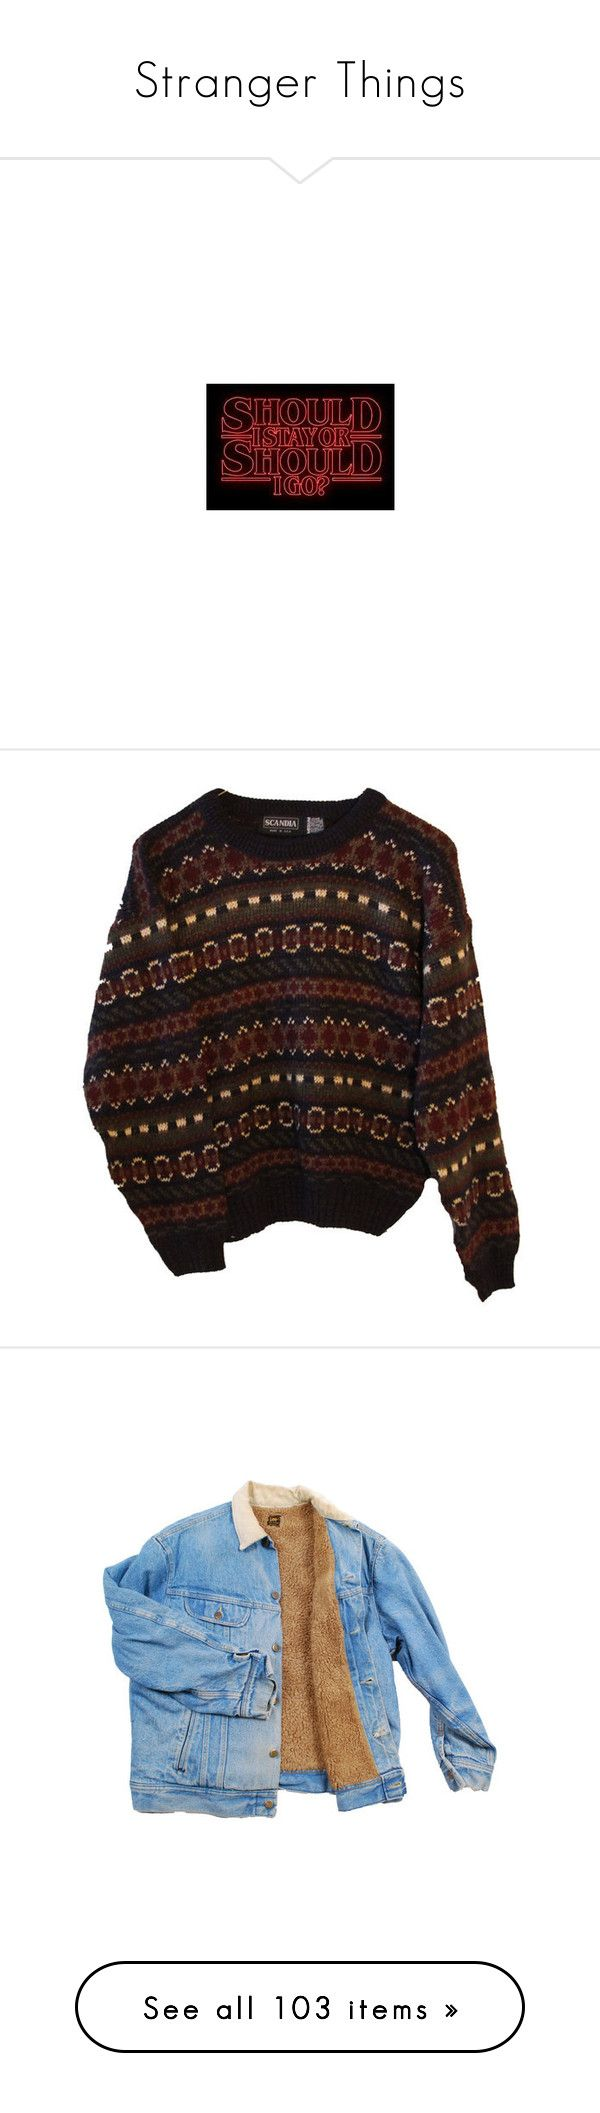 """Stranger Things"" by biancalwez on Polyvore featuring stranger things, tops, sweaters, shirts, jumpers, hipster sweaters, tribal shirts, tribal pattern shirts, fitted tops and tribal print shirts"